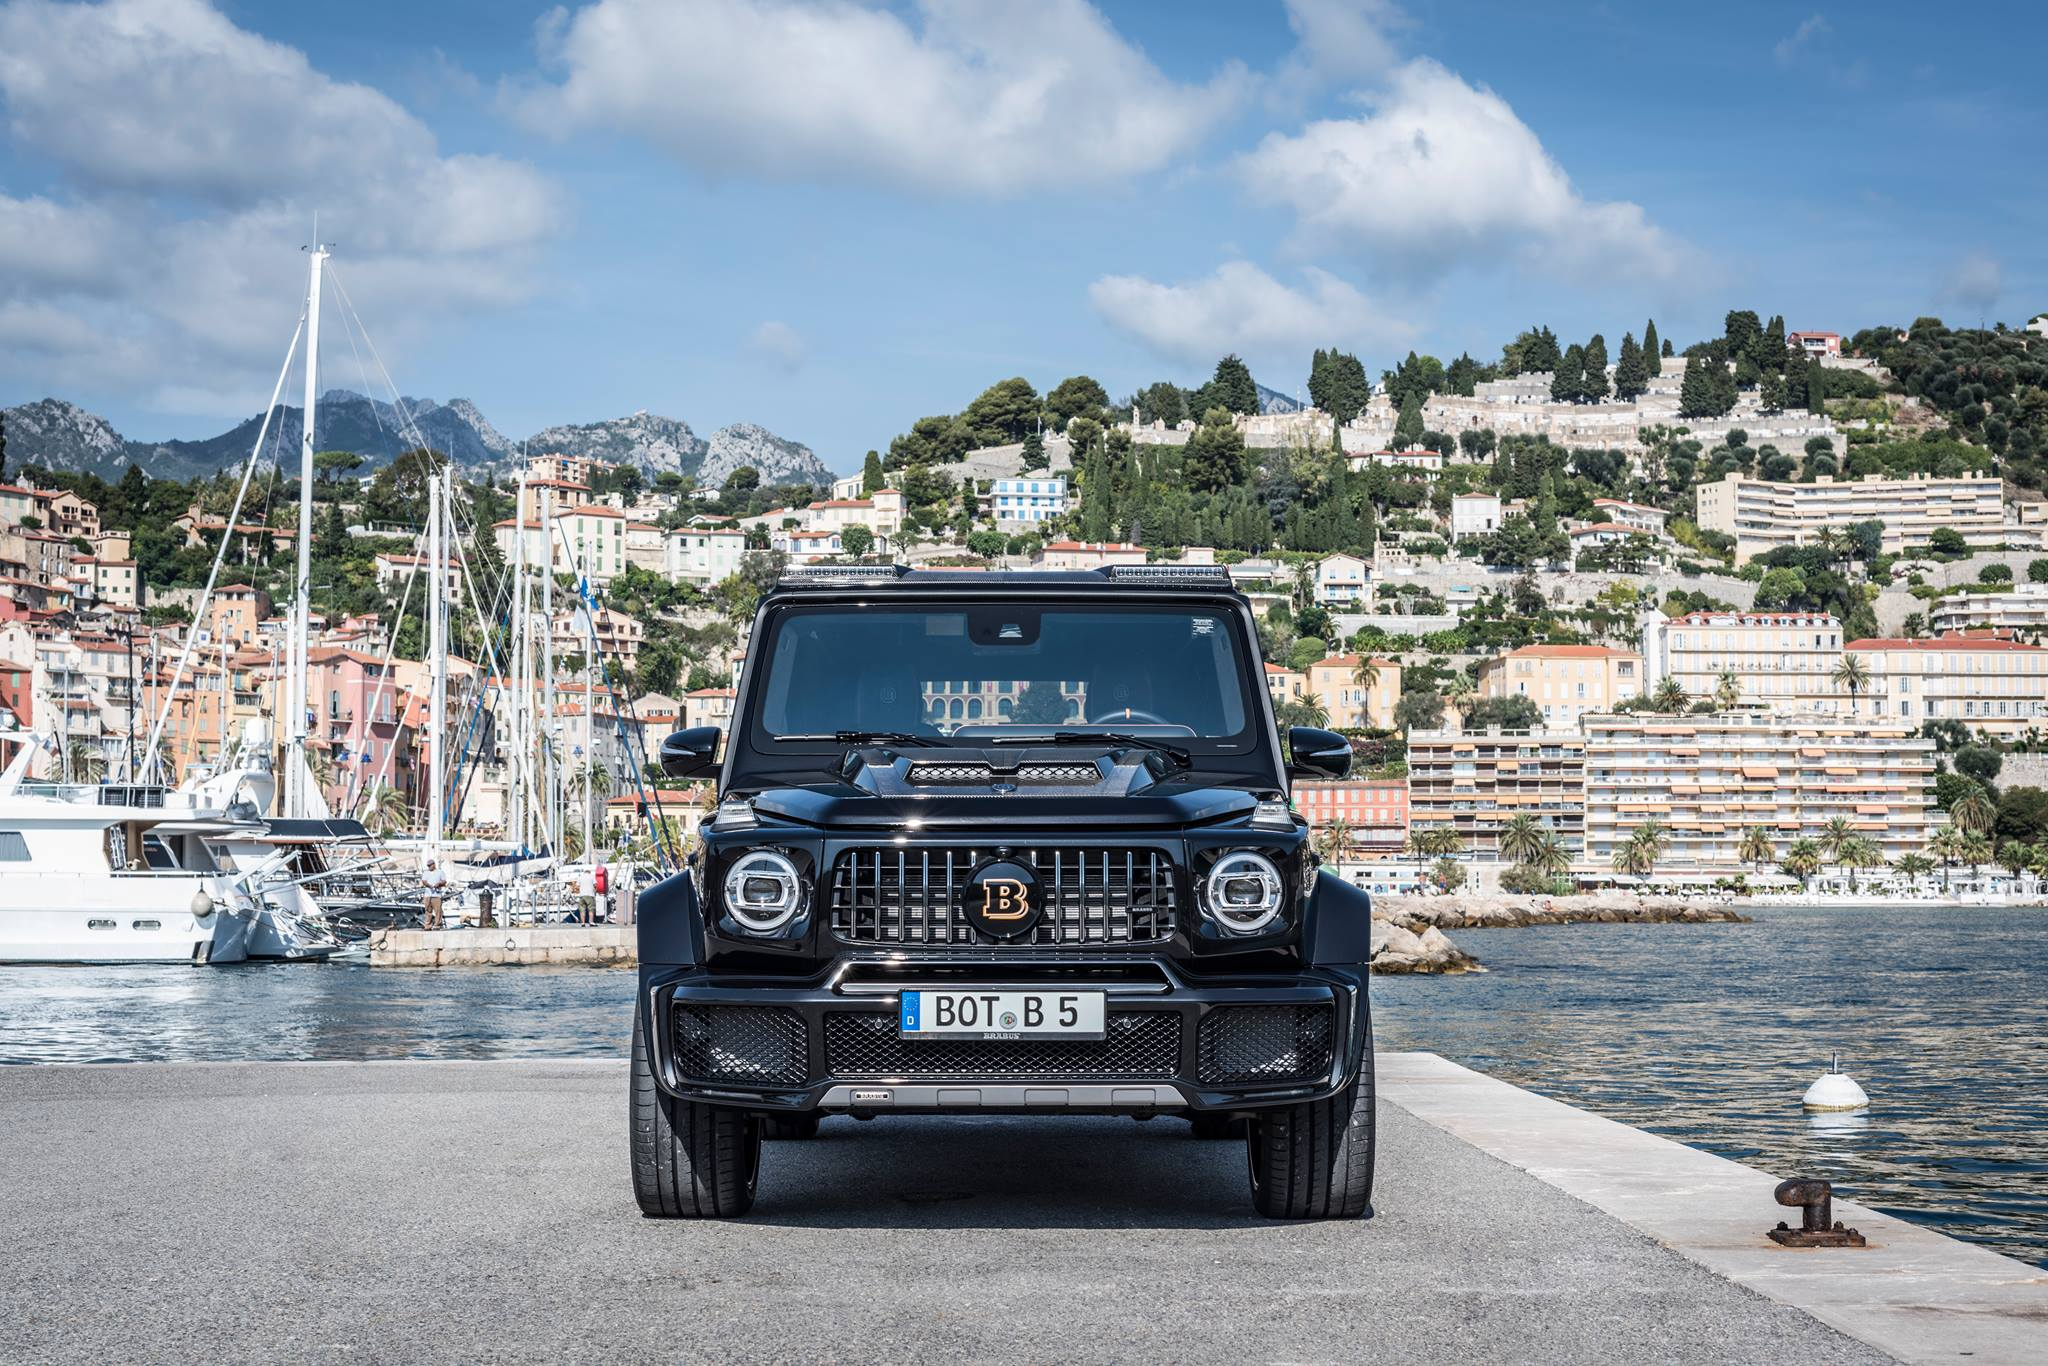 2019 Mercedes-AMG G63 Tuned by Brabus Makes 700 HP - autoevolution